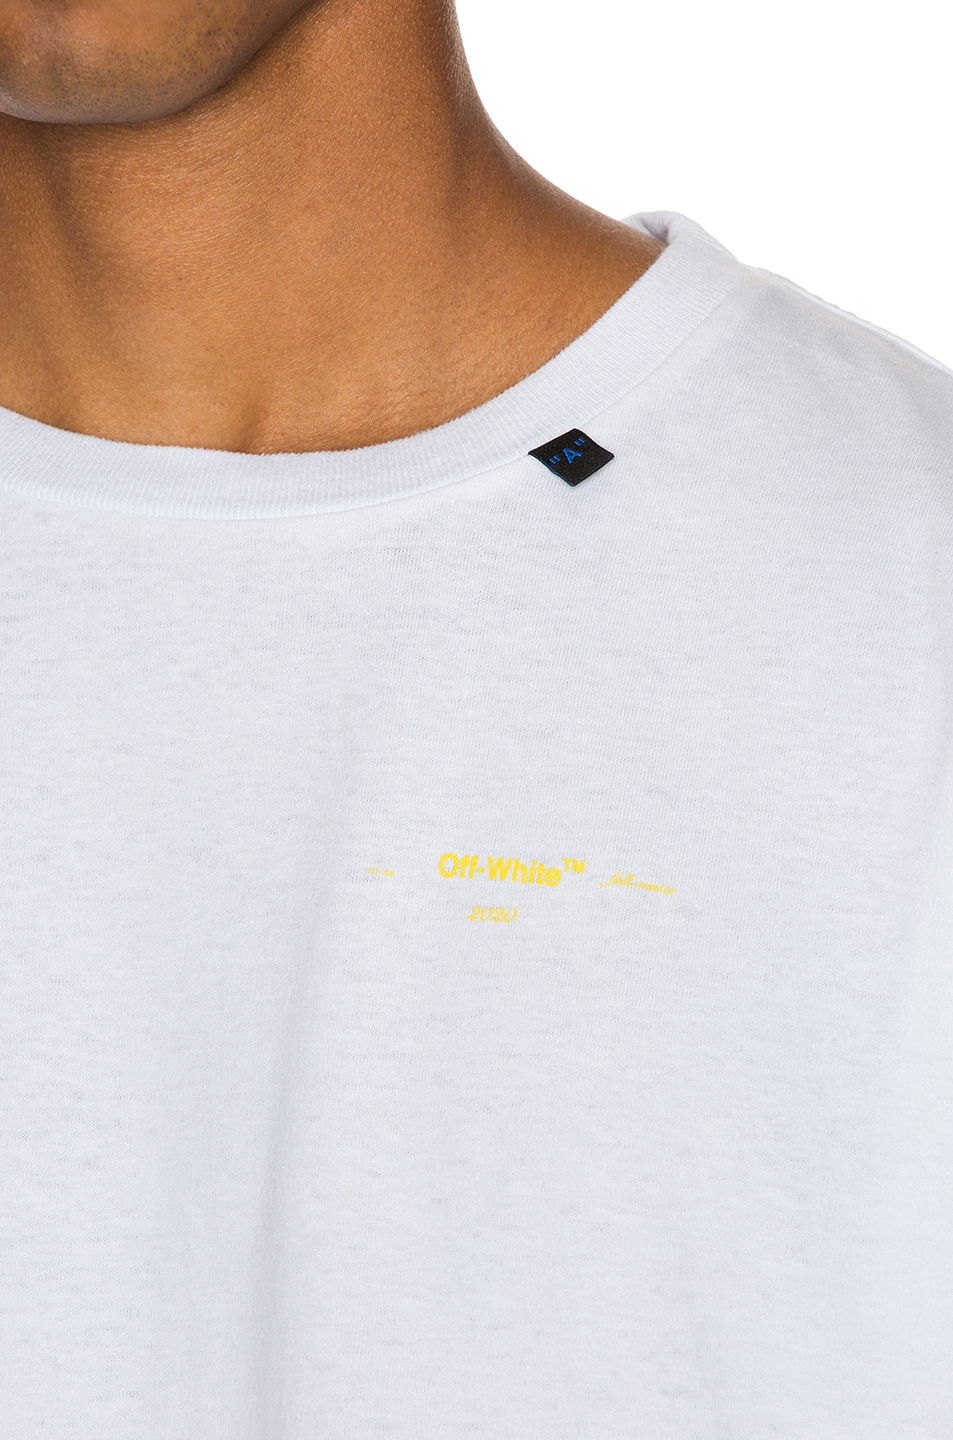 Image 7 of OFF-WHITE Acrylic Arrows Tee in White & Yellow